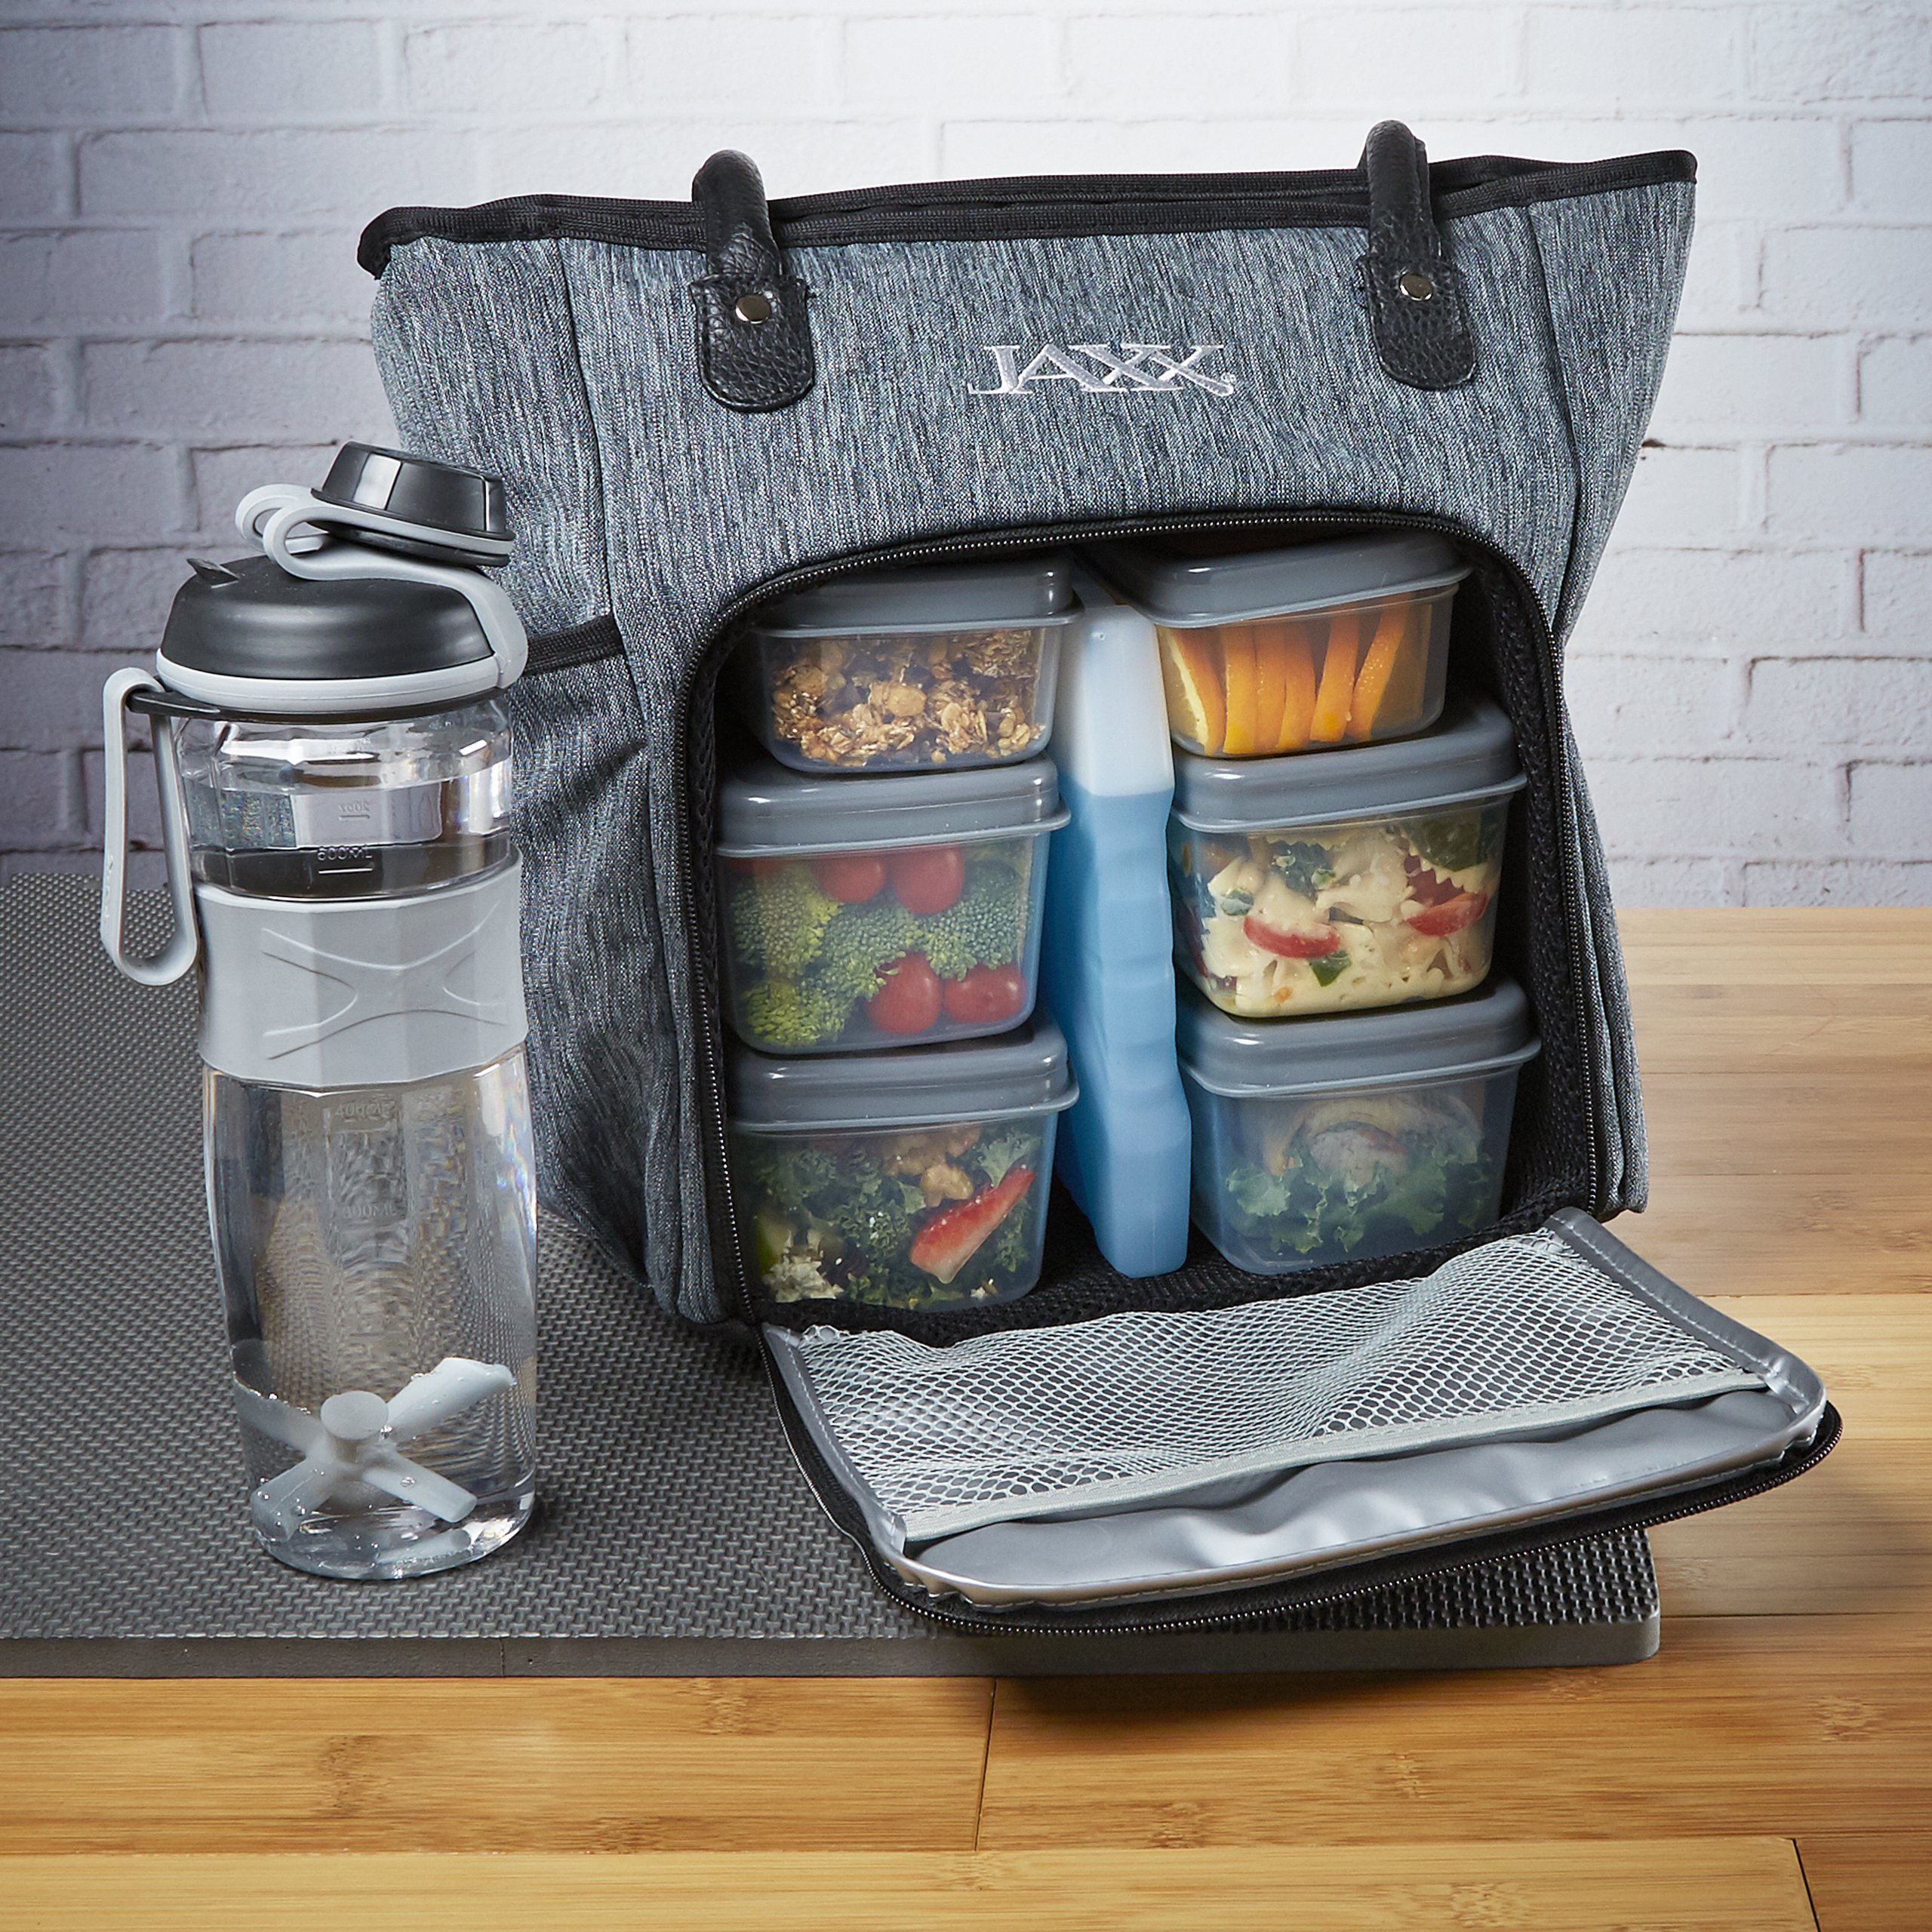 Fit & Fresh Jaxx FitPak Commuter Meal Prep Bag with Portion Control Containers & 24 oz Shaker Bottle by Fit & Fresh